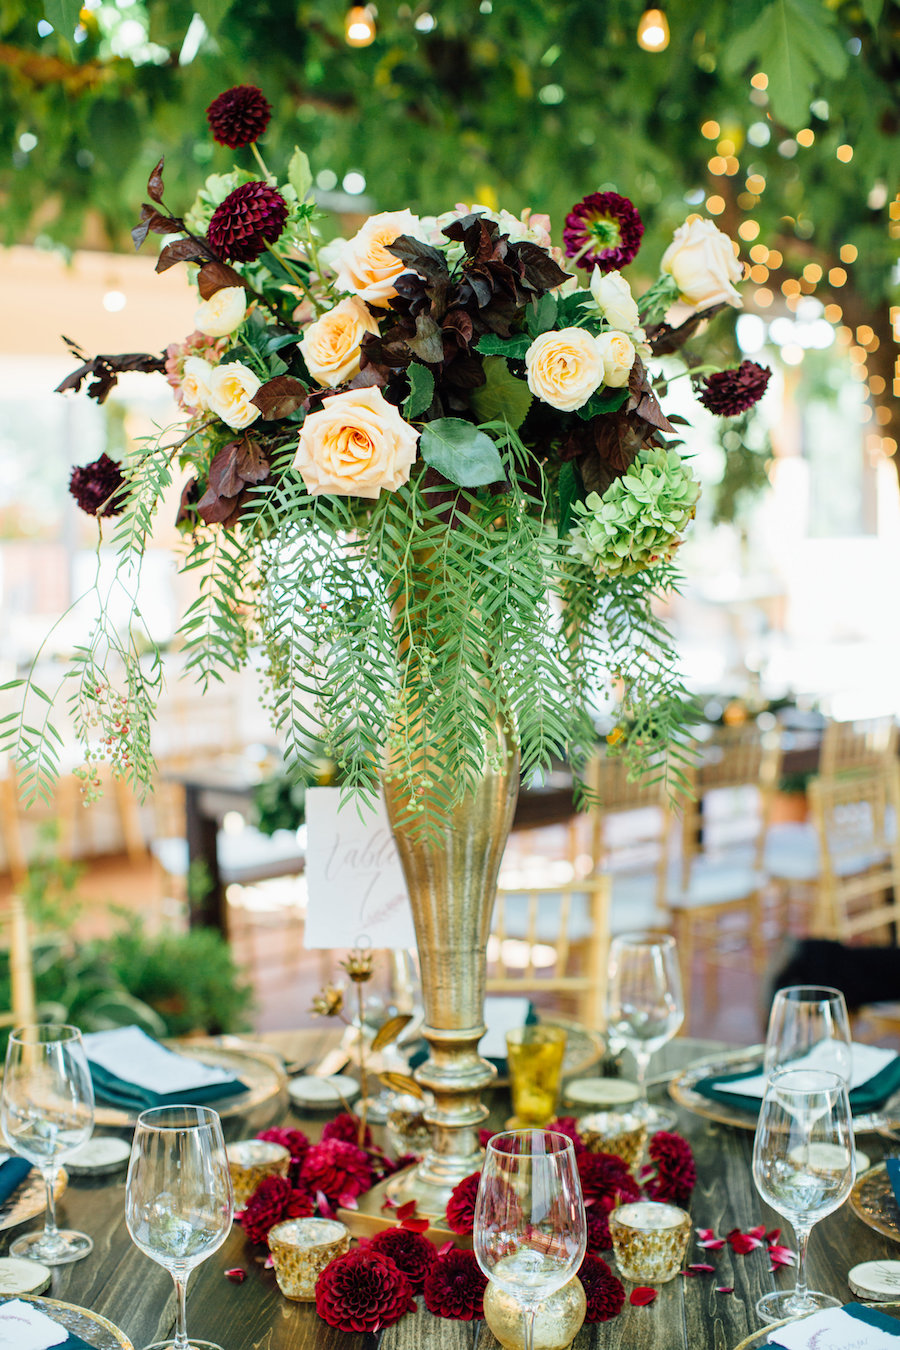 Chic Jewel-Toned Styled Shoot Featured on California Wedding Day2.jpg